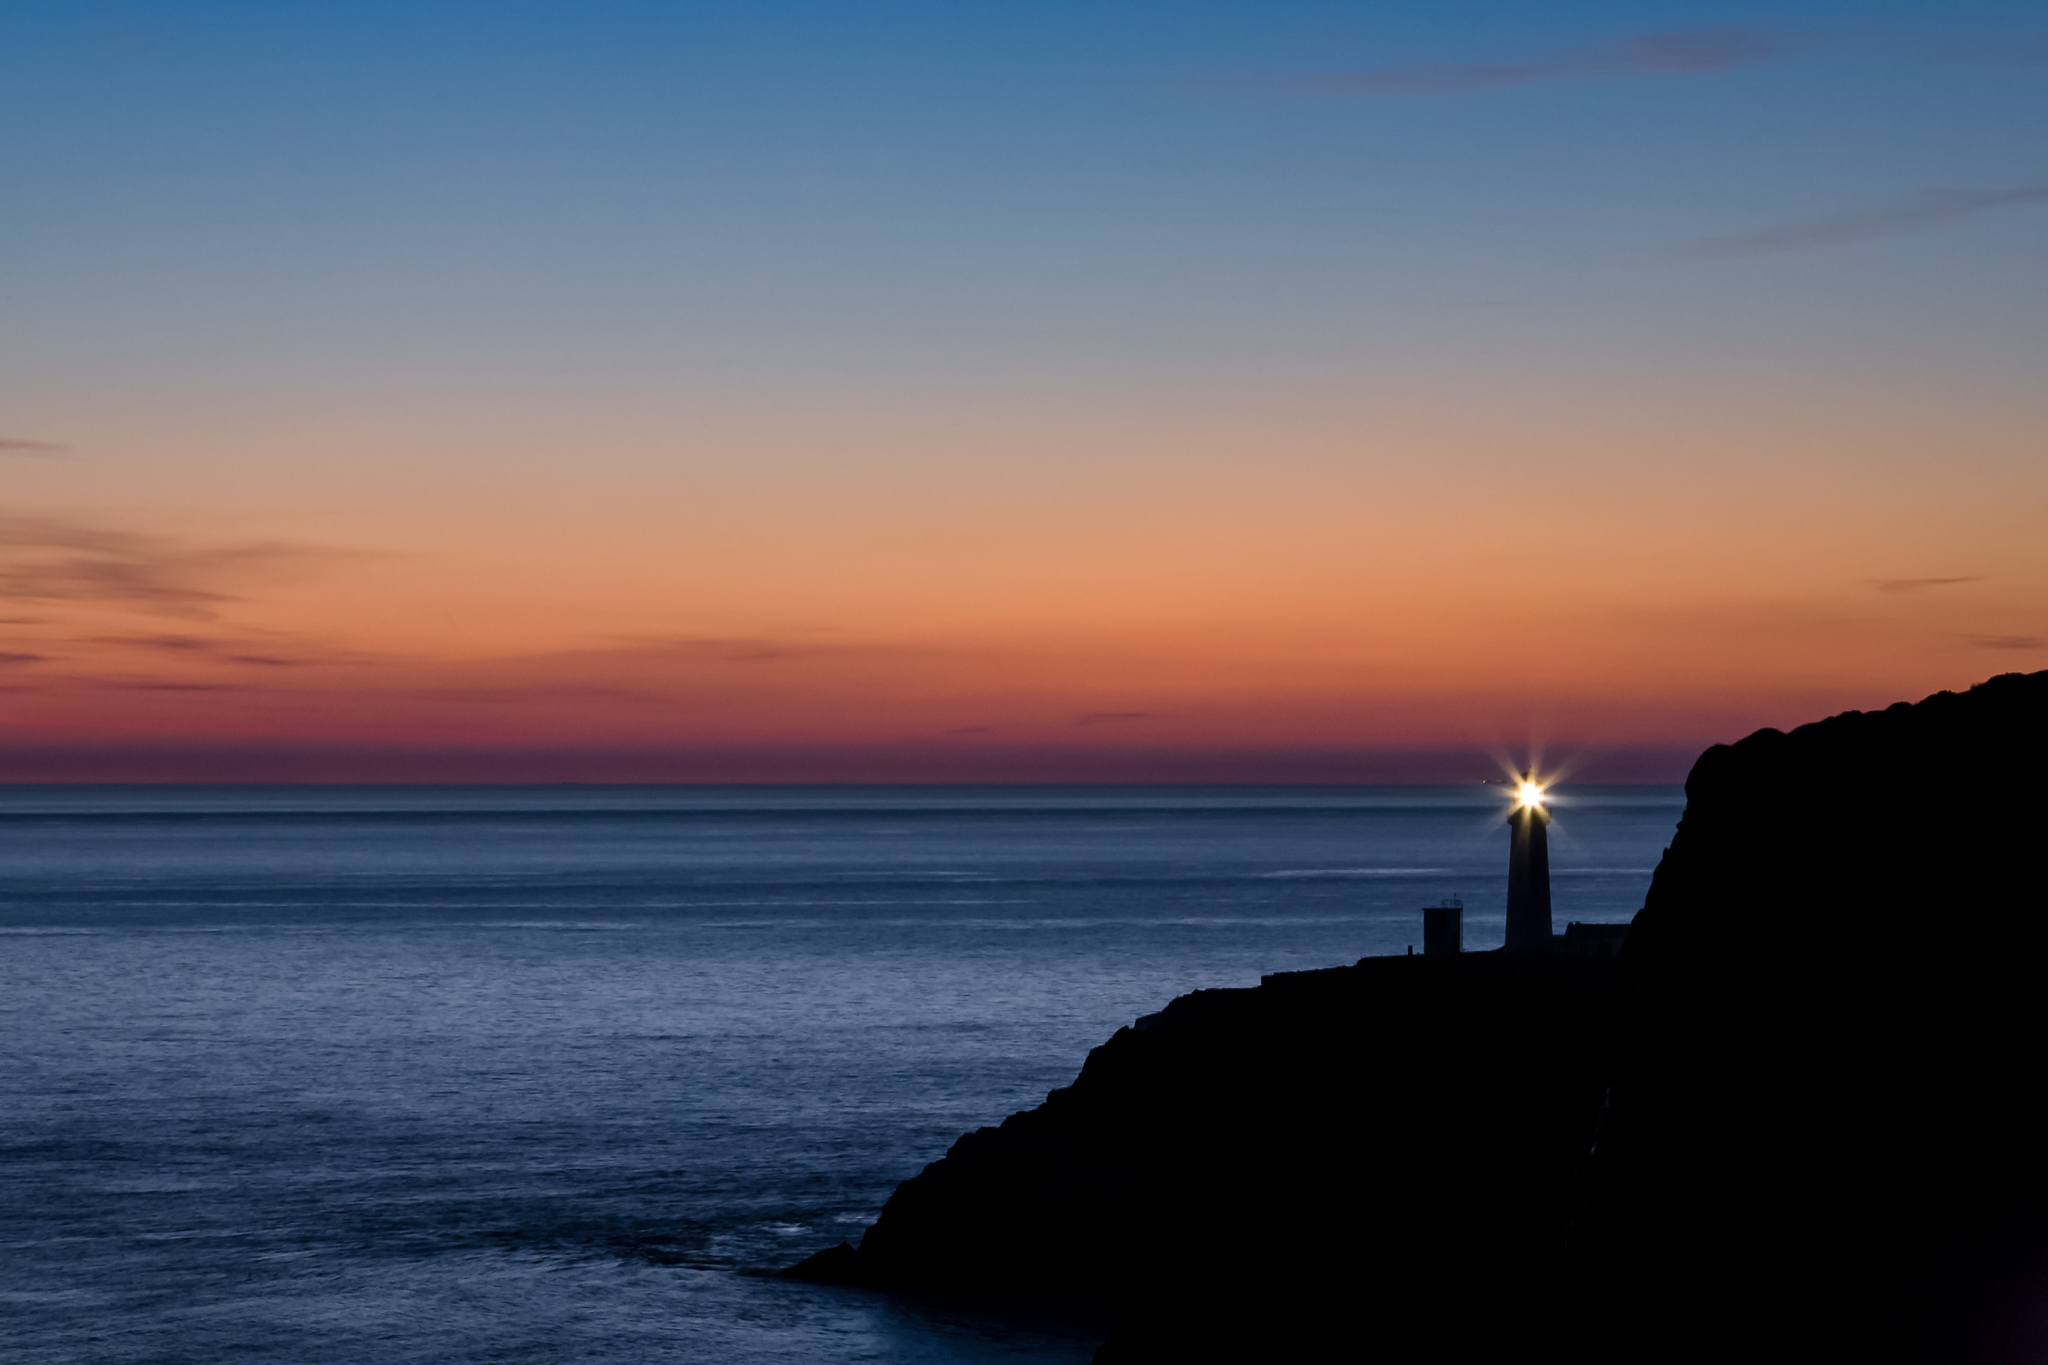 Every day at dusk the lighthouse begins it's show, warning sailors of the dangers they face should they come too close. Beautiful in sunset, there lurks beneath the beauty a savage land and unforgiving sea only too keen to reap careless souls.